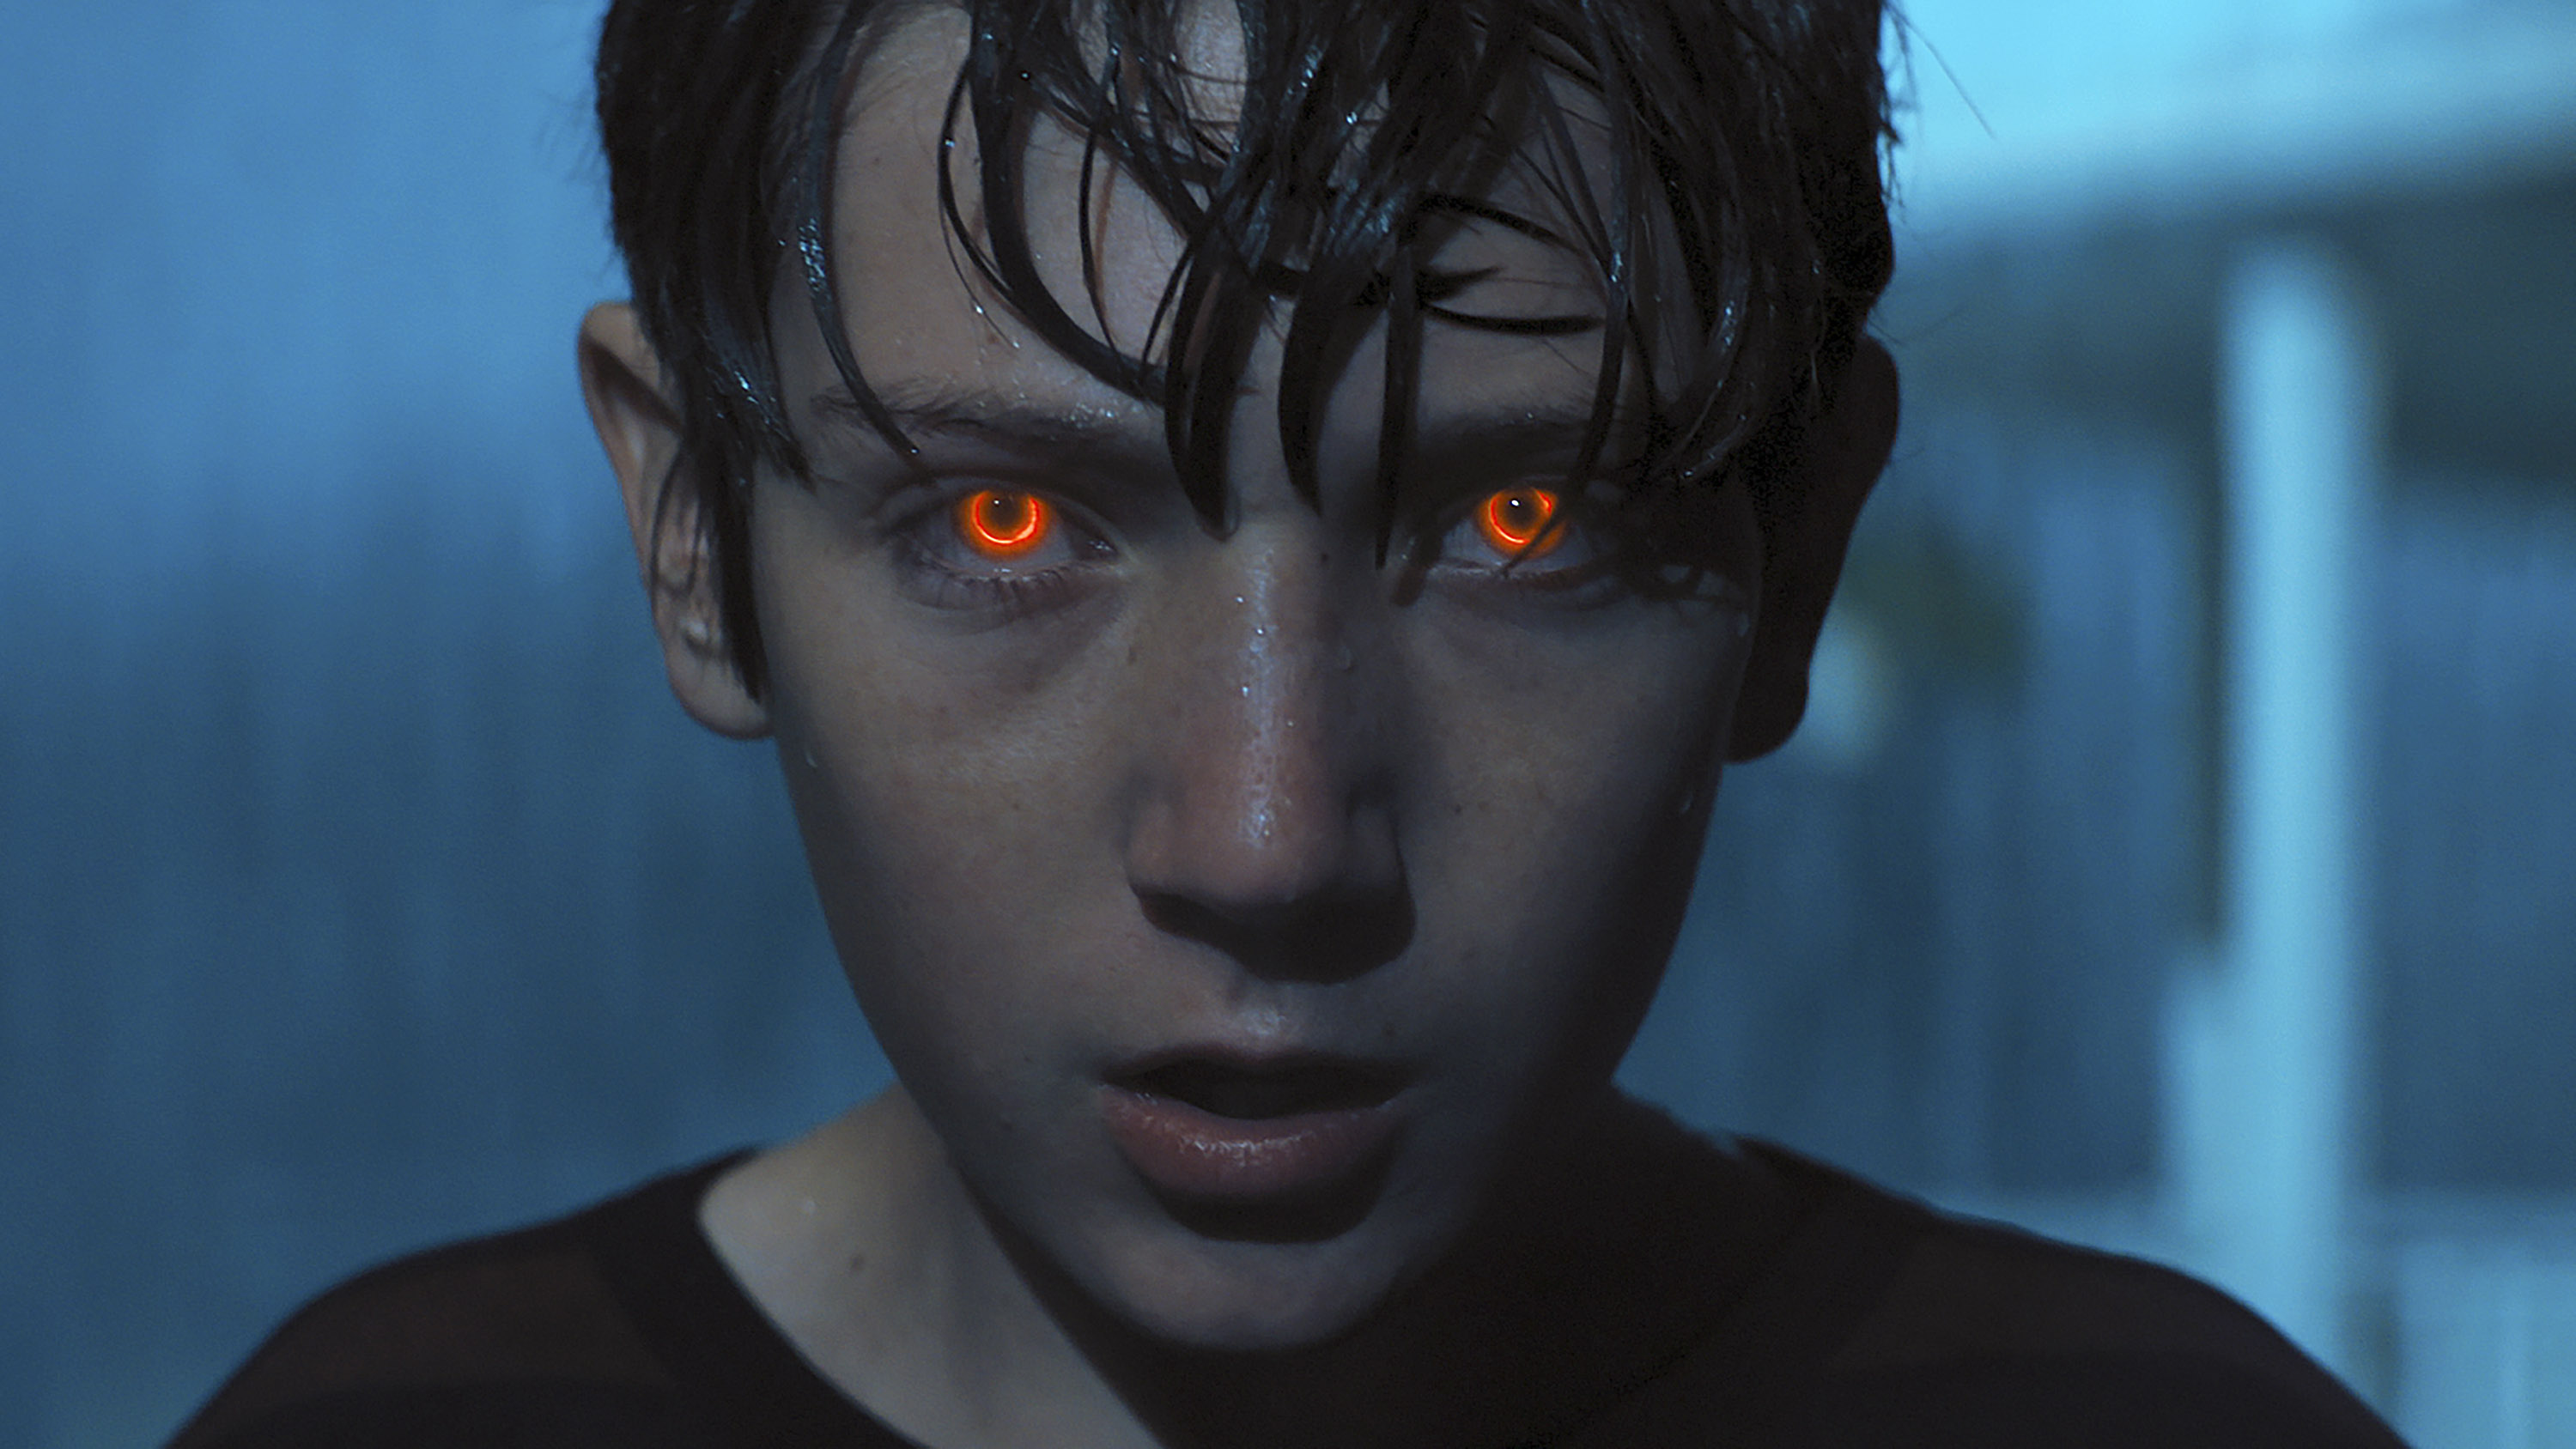 Brightburn makes gory, bleak changes to the Superman story we all know